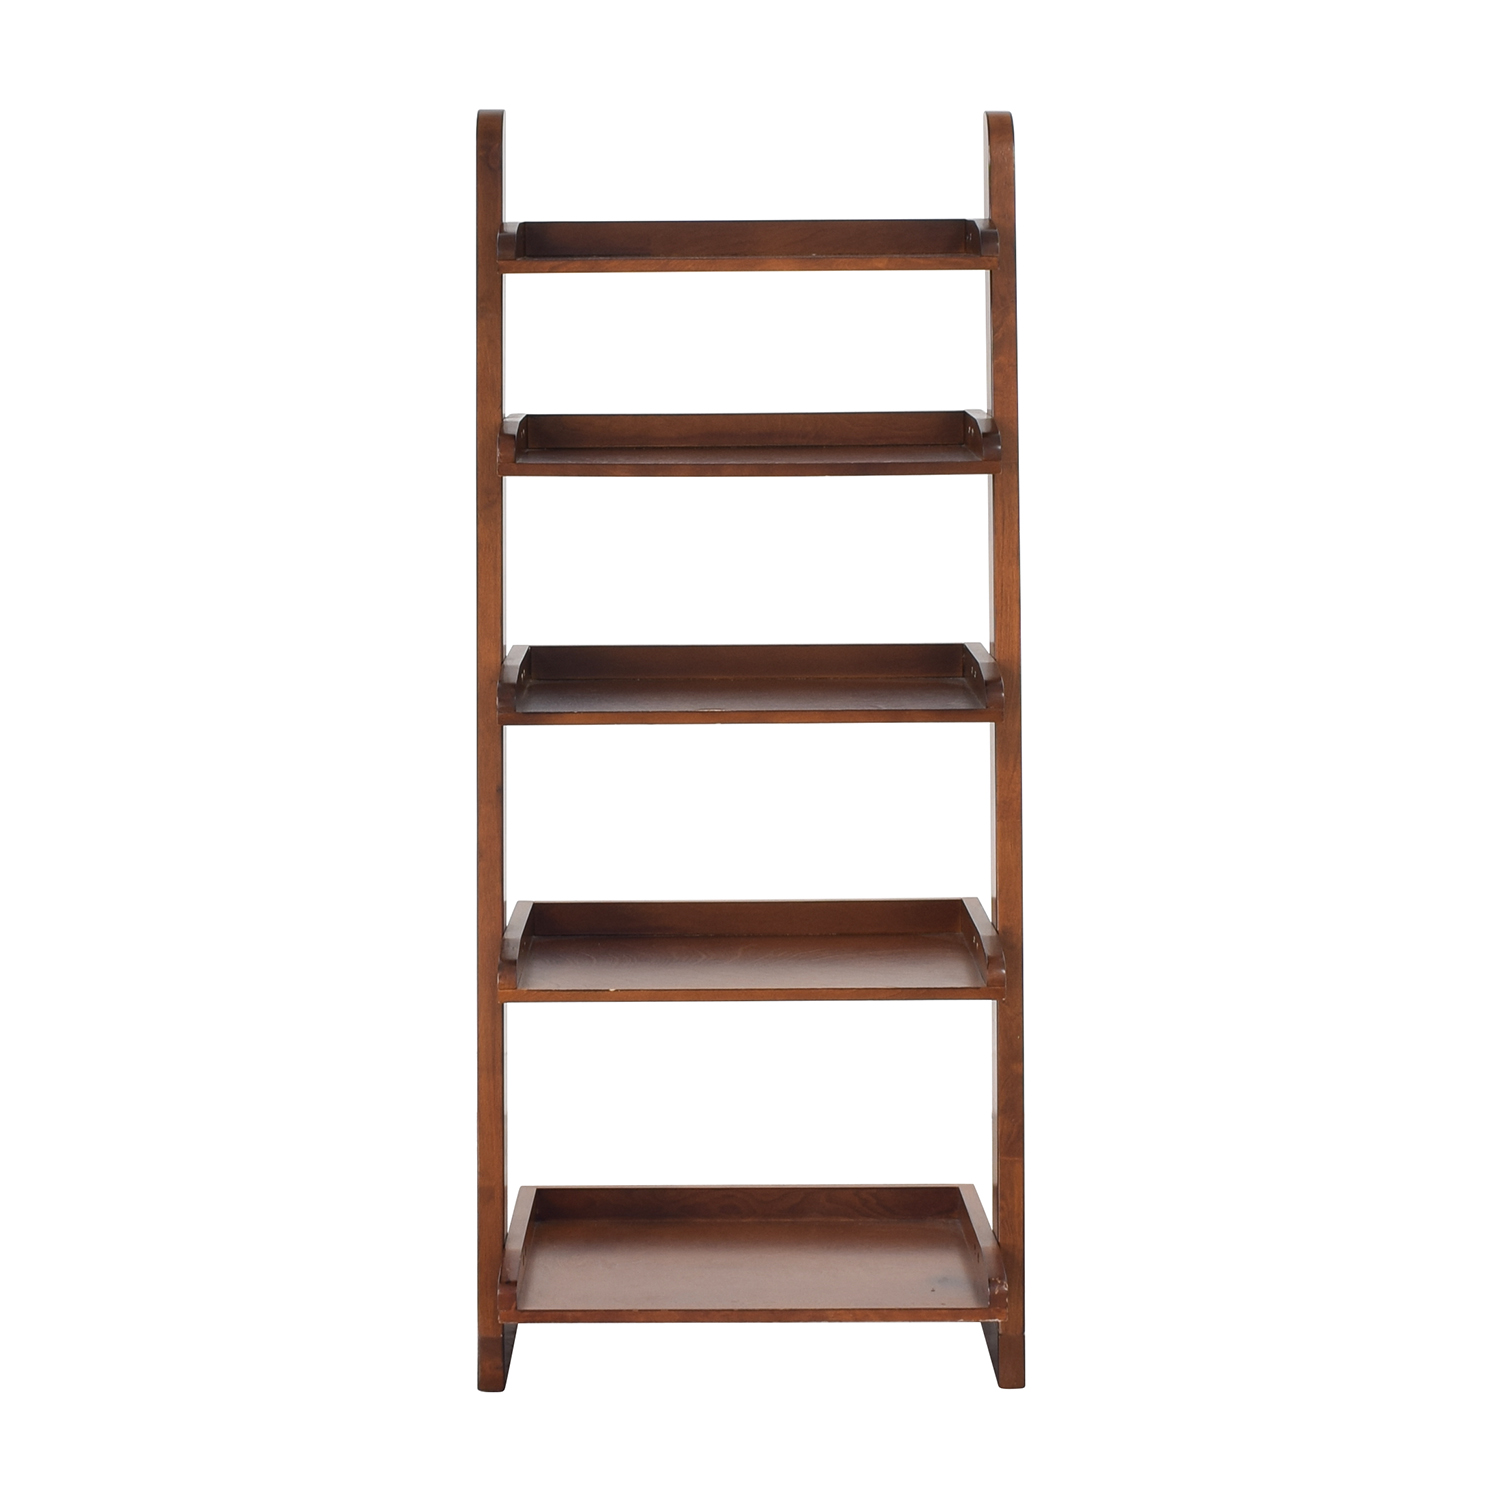 Hooker Furniture Ladder Bookcase / Bookcases & Shelving